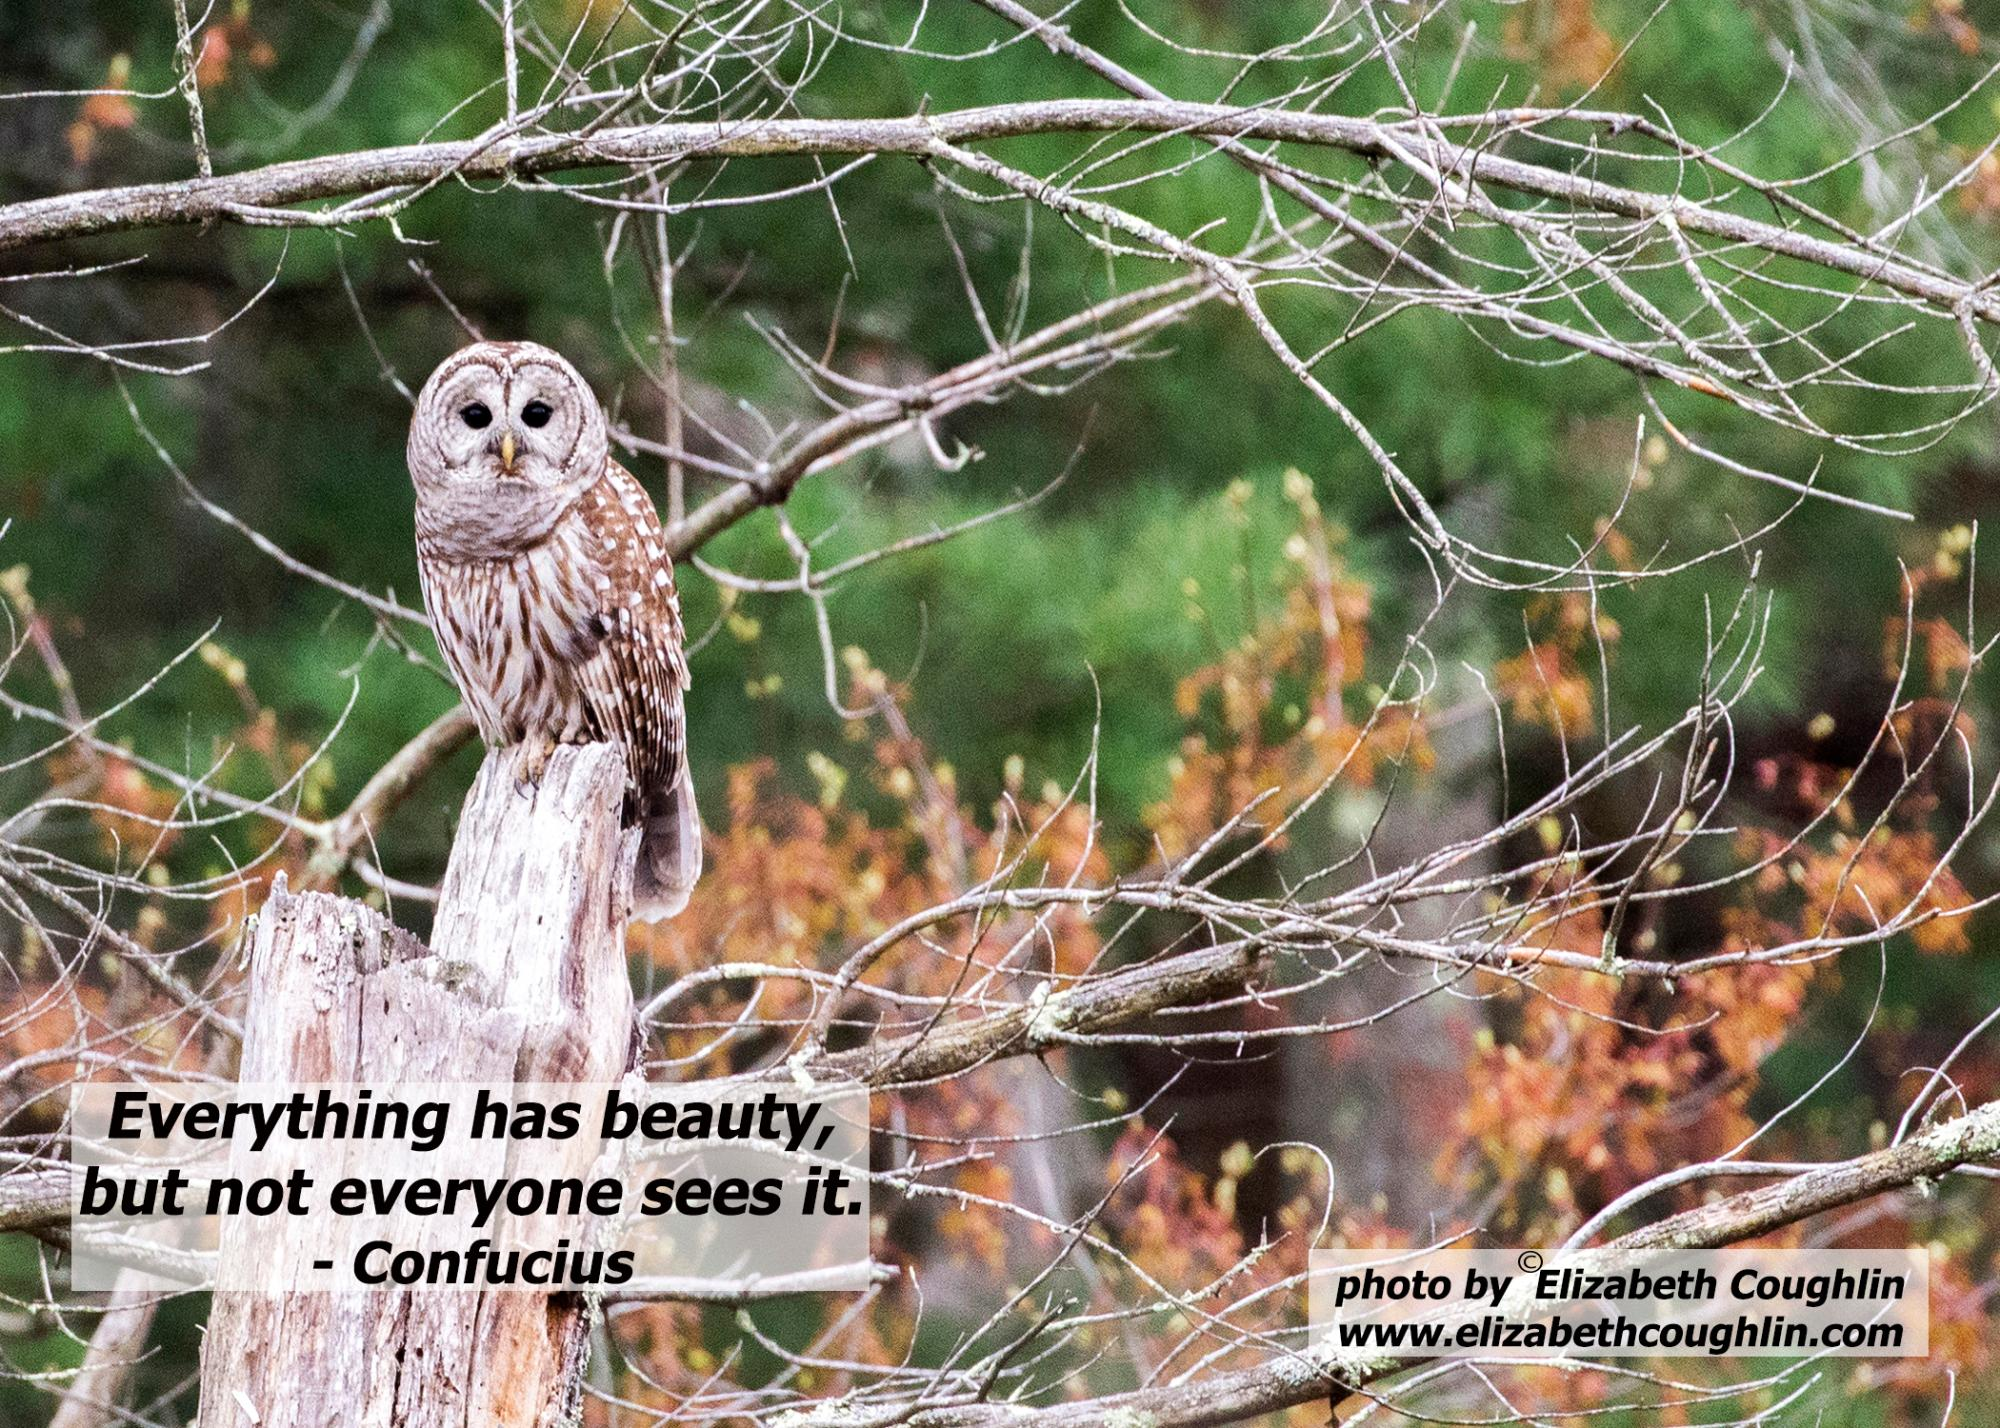 Owl_BarredOwl_EverythingHasBeauty.jpg